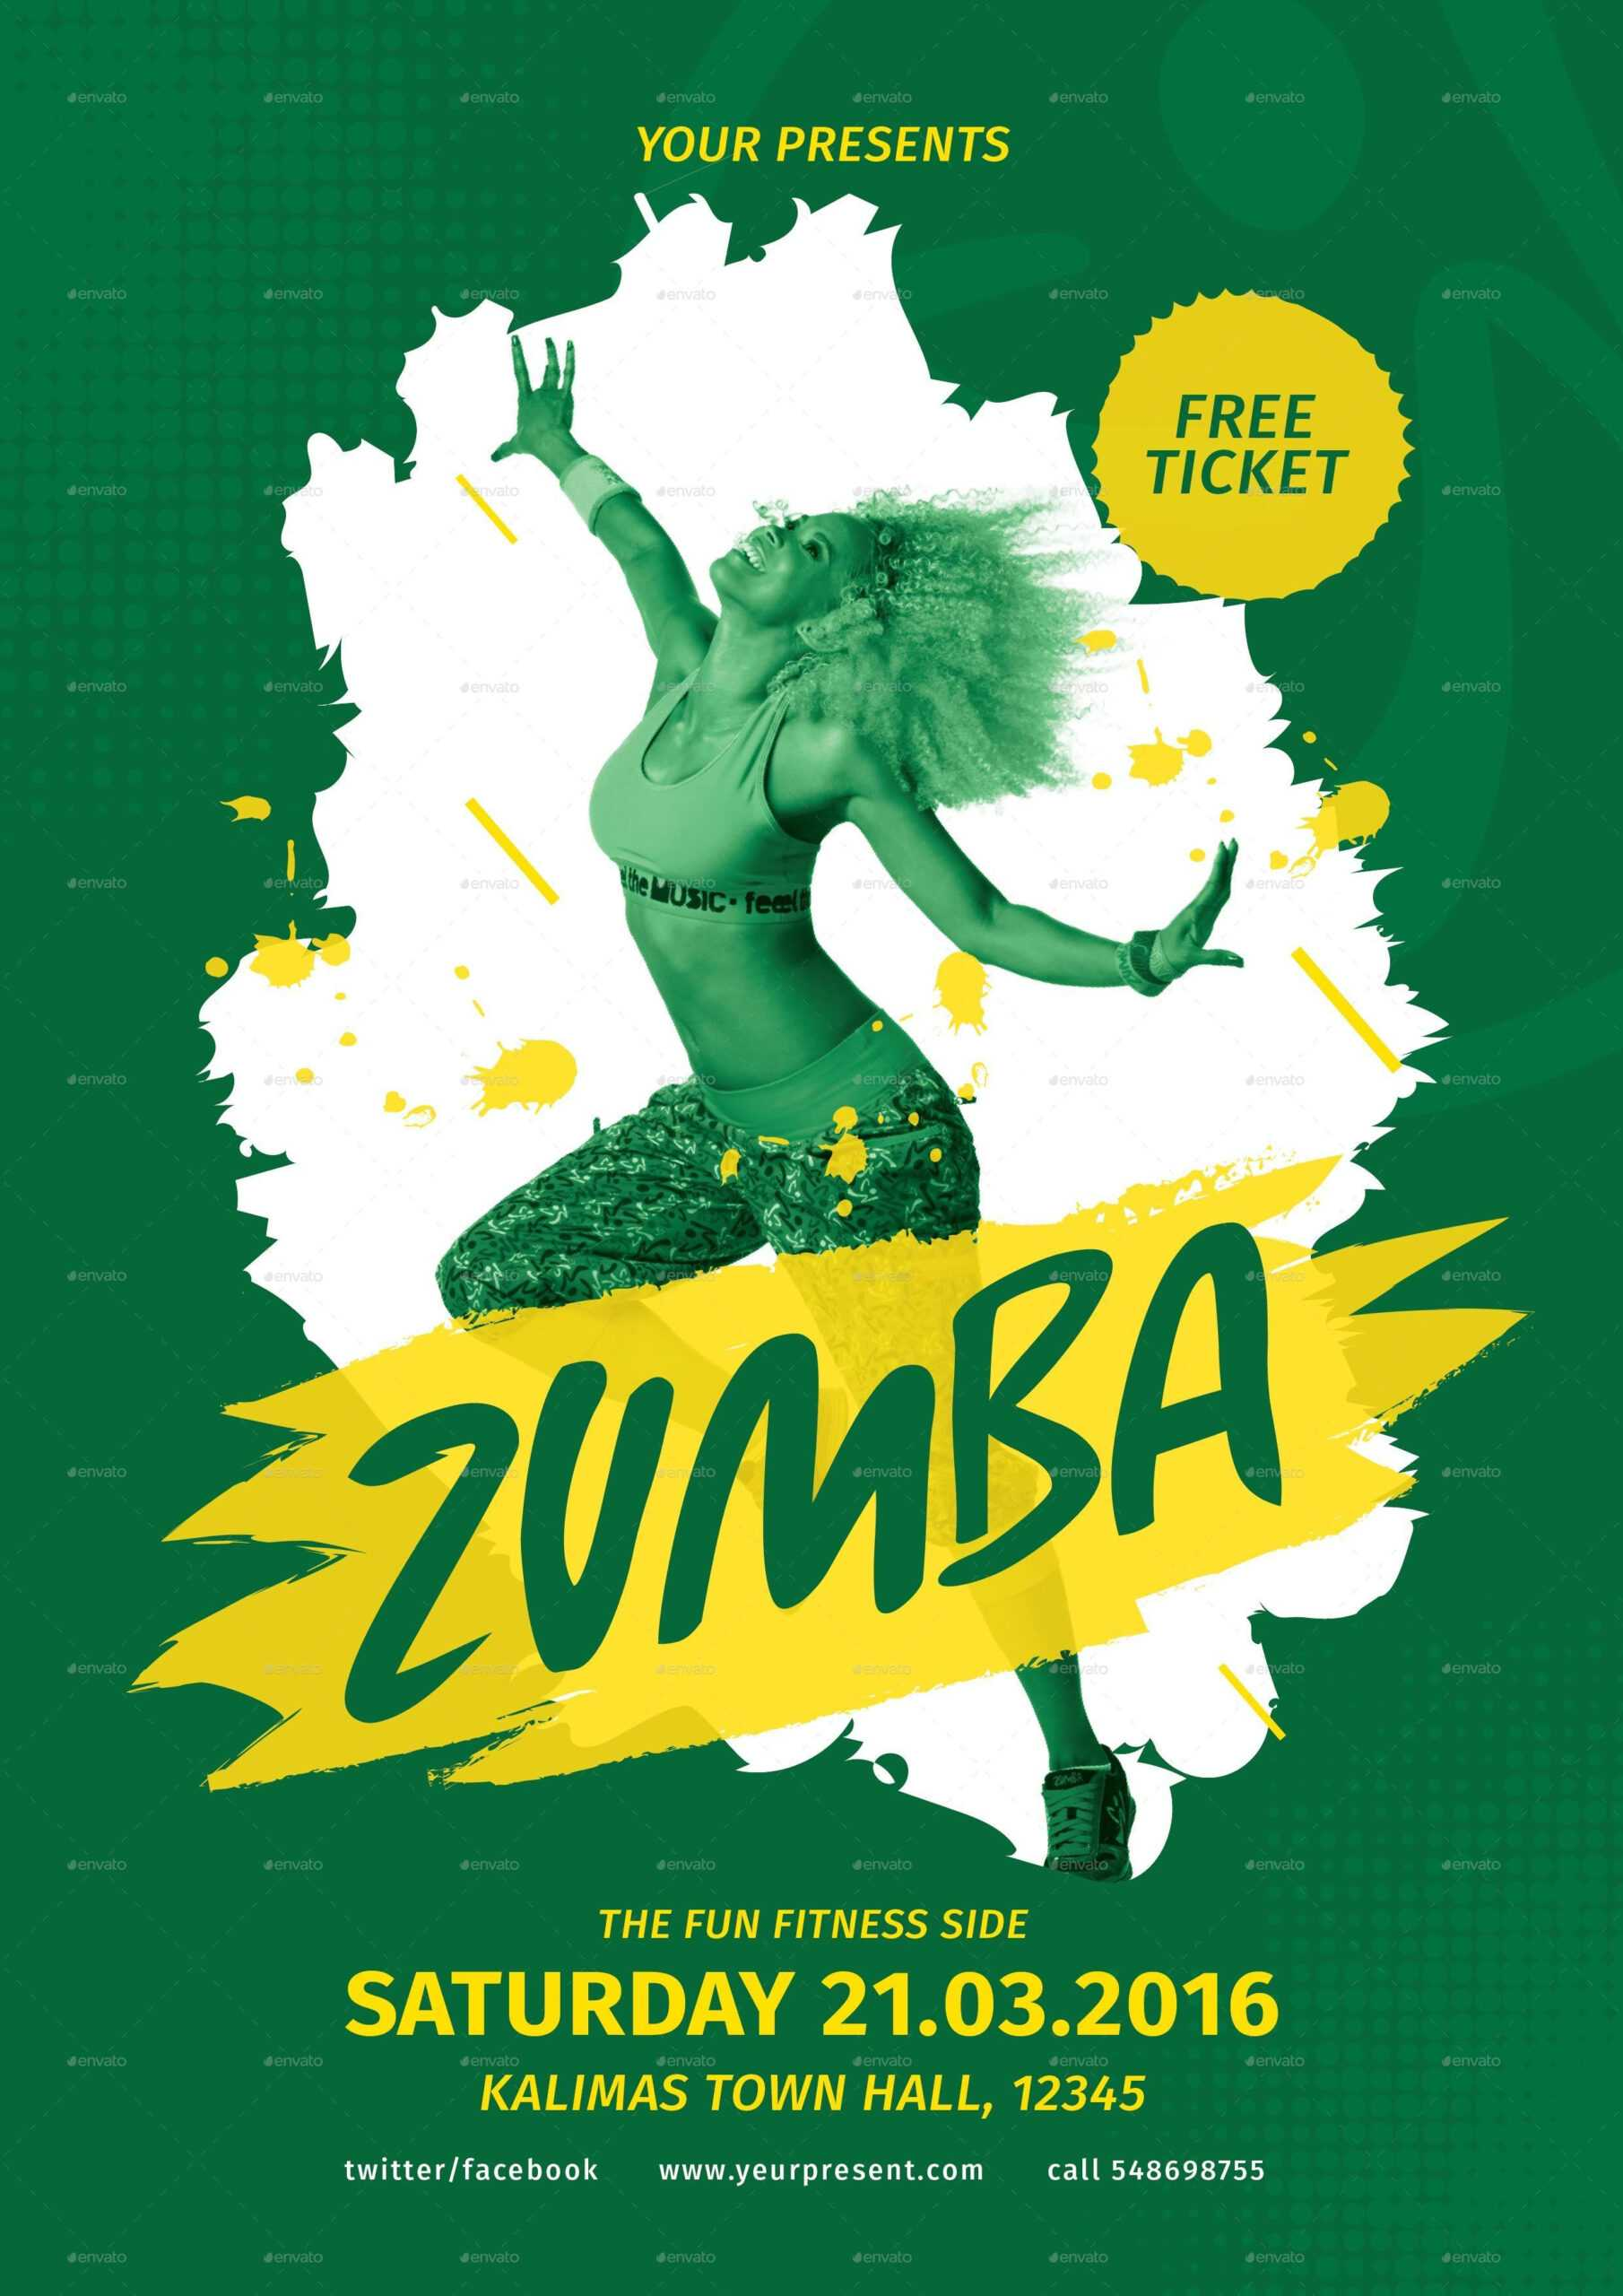 Zumba Flyer Template Free ] - Images About Zumba On Intended For Free Zumba Flyer Templates